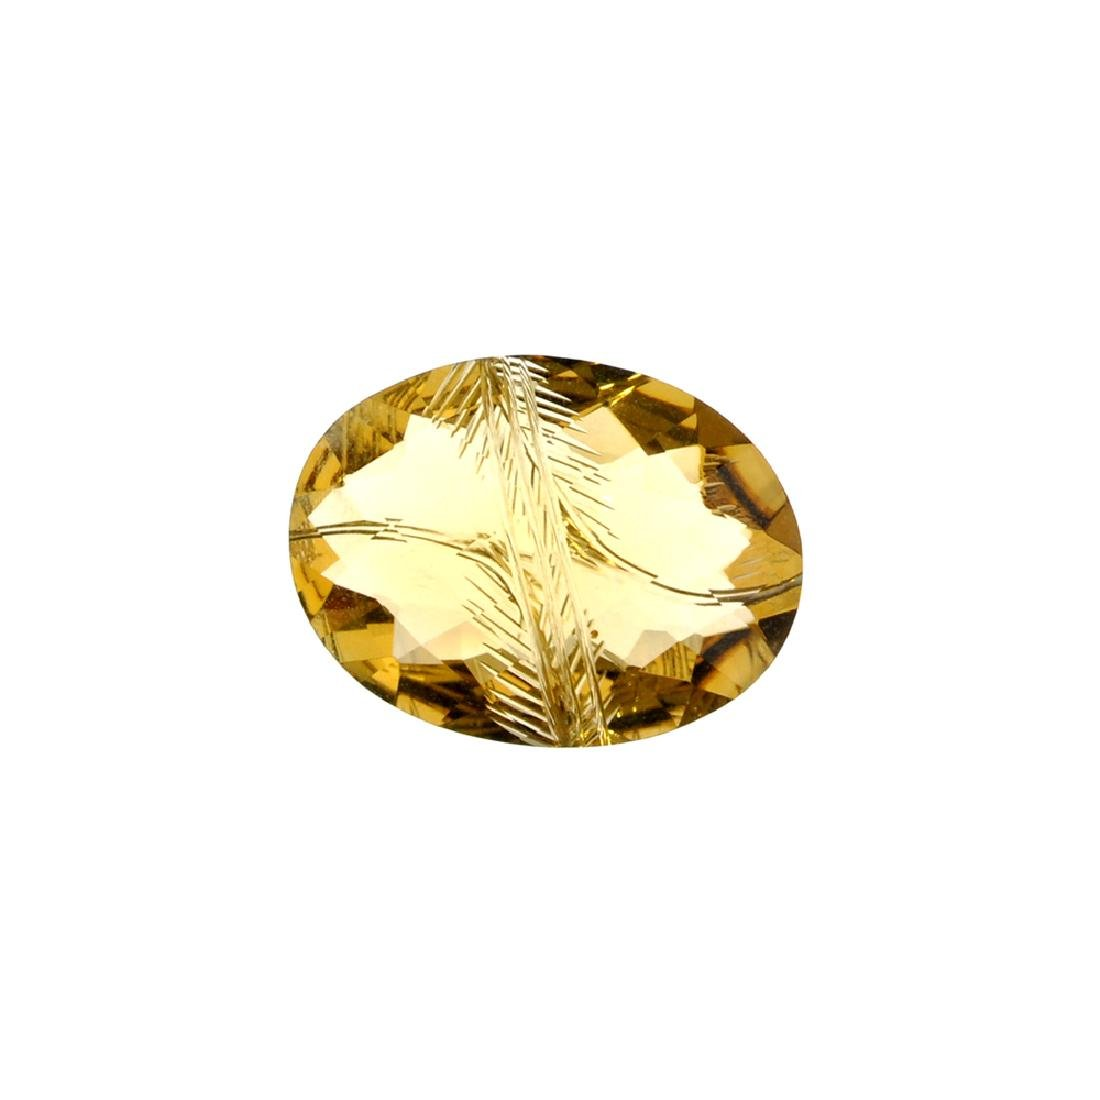 APP: 1.6k 20.85CT Carved Oval Cut Citrine Gemstone